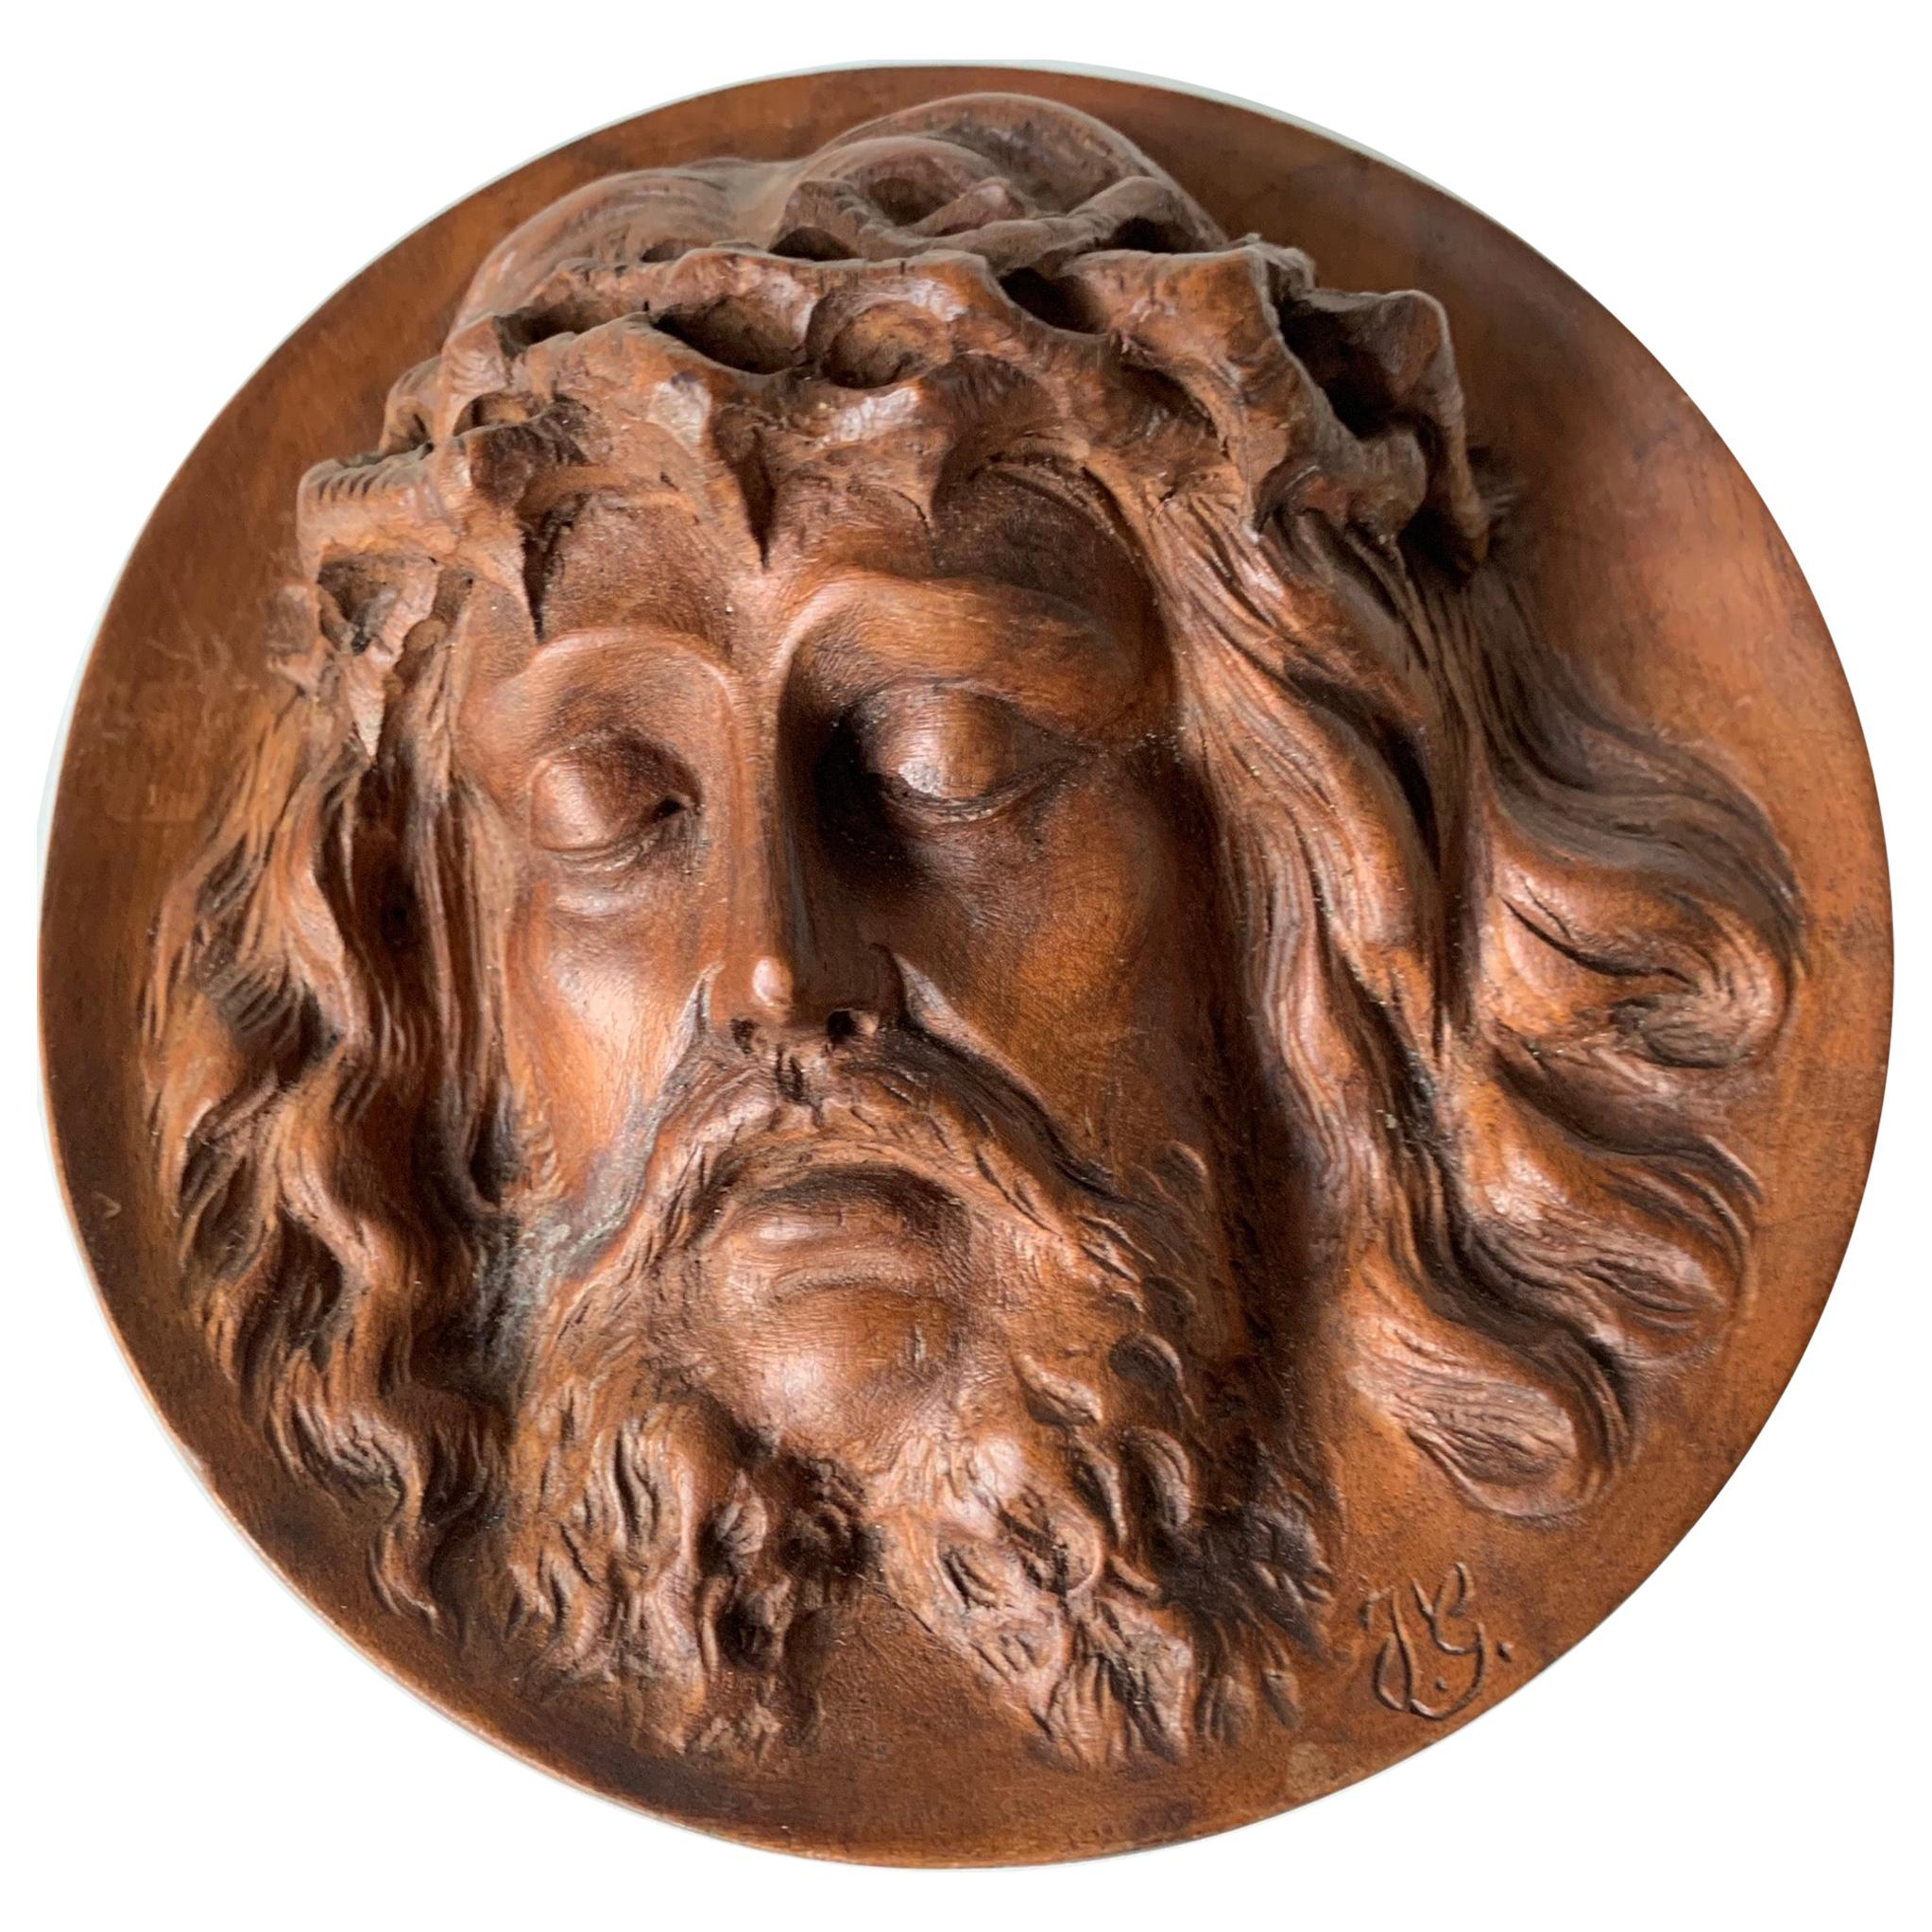 Unique and Finely Hand Carved, 19th Century Christ Mask Medallion / Round Plaque